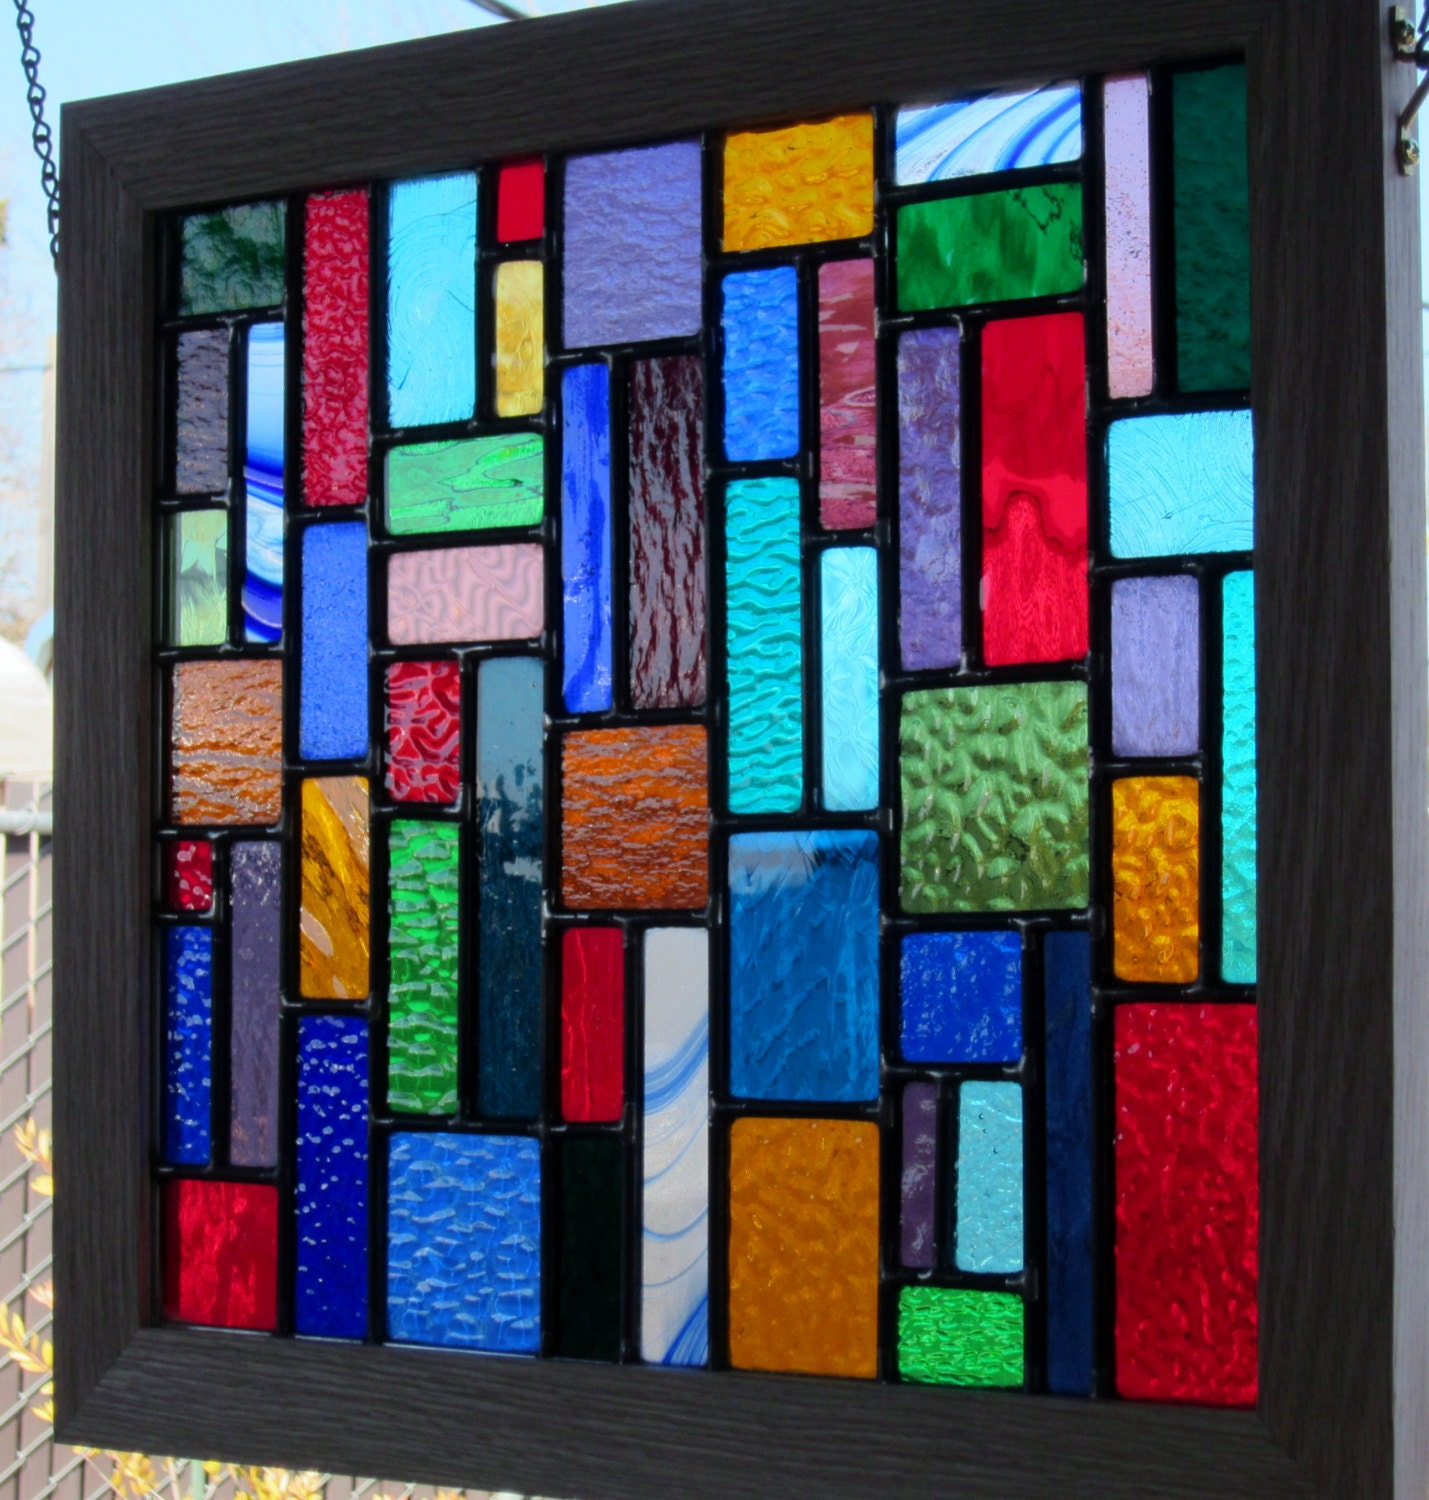 Framed Stained Glass Windows